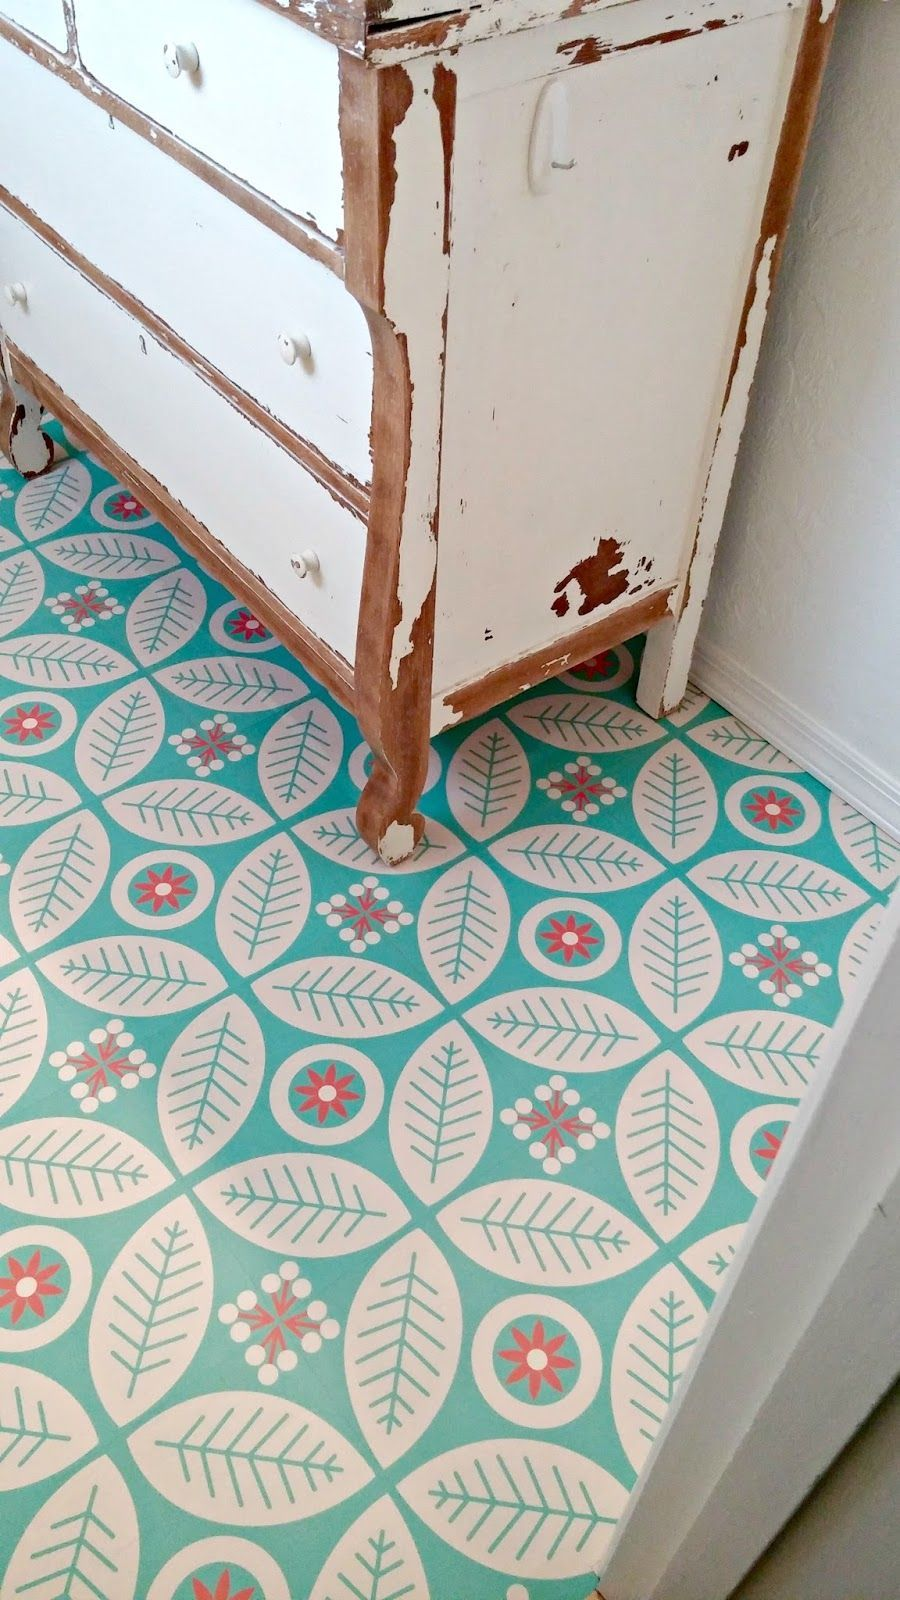 Self-adhesive vinyl floor tiles from Mirth Studios | Home Decor ...